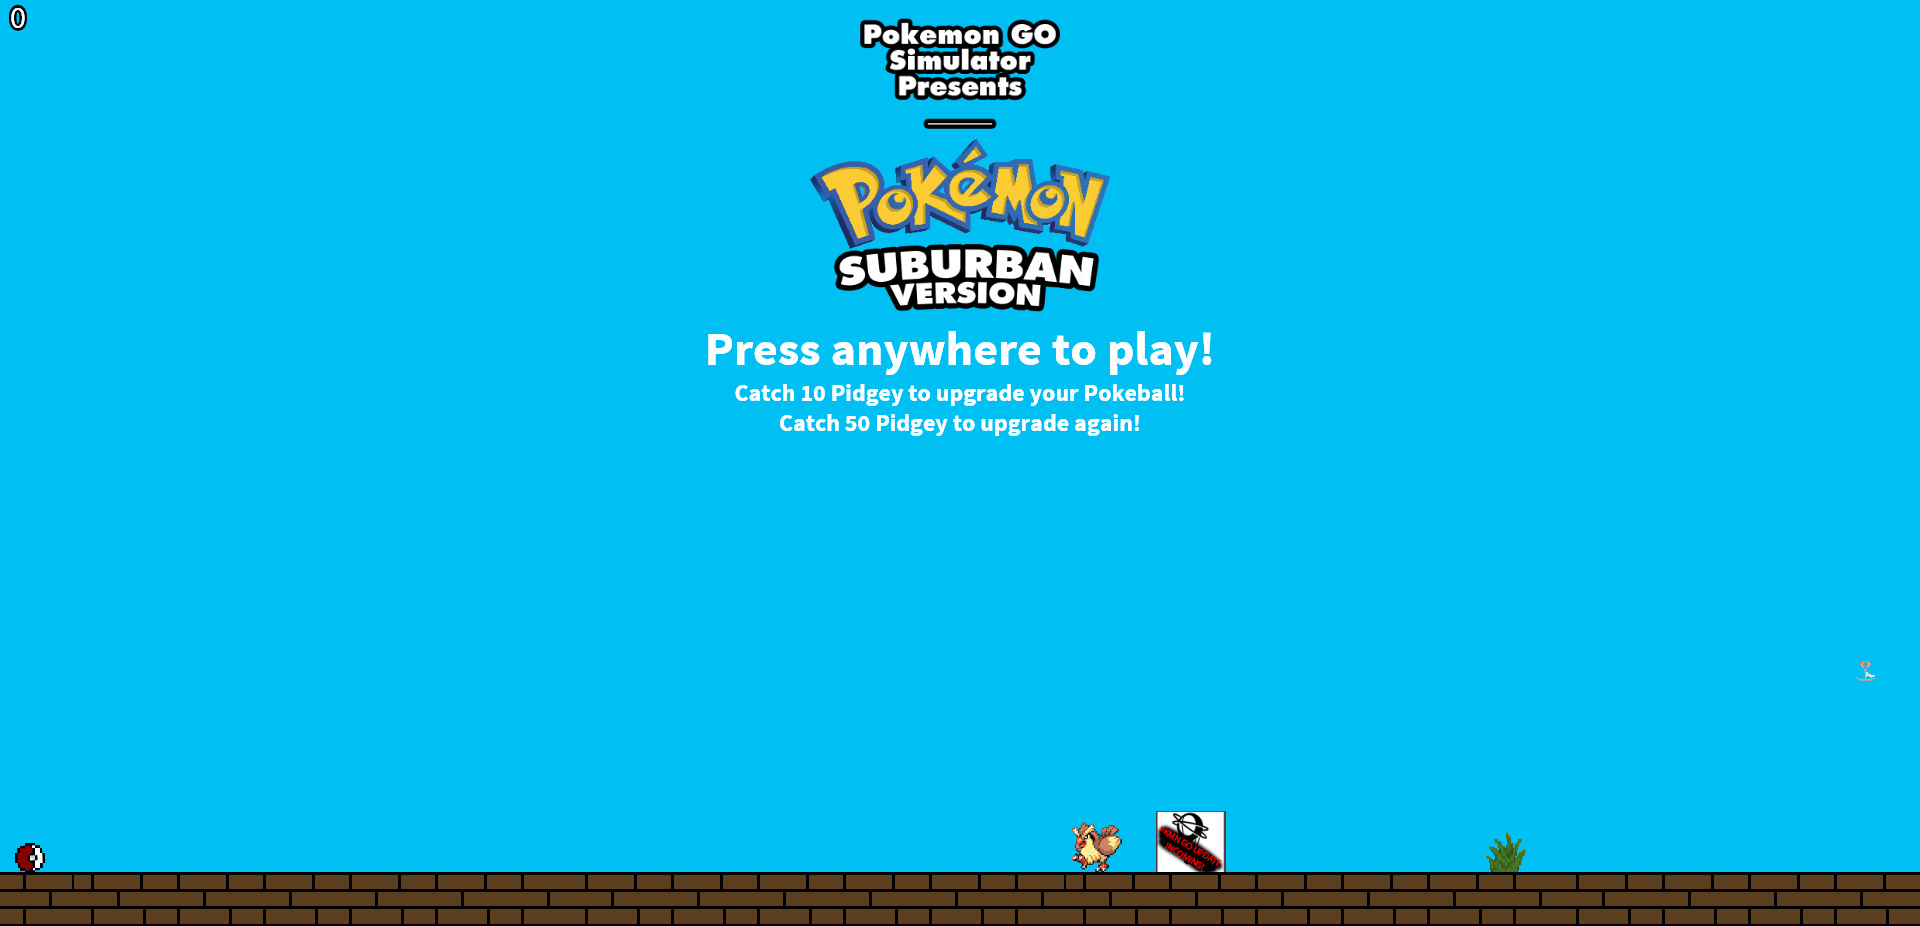 Random: Disgruntled Young Pokémon GO Fan Makes Satirical Game About Playing in the Suburbs